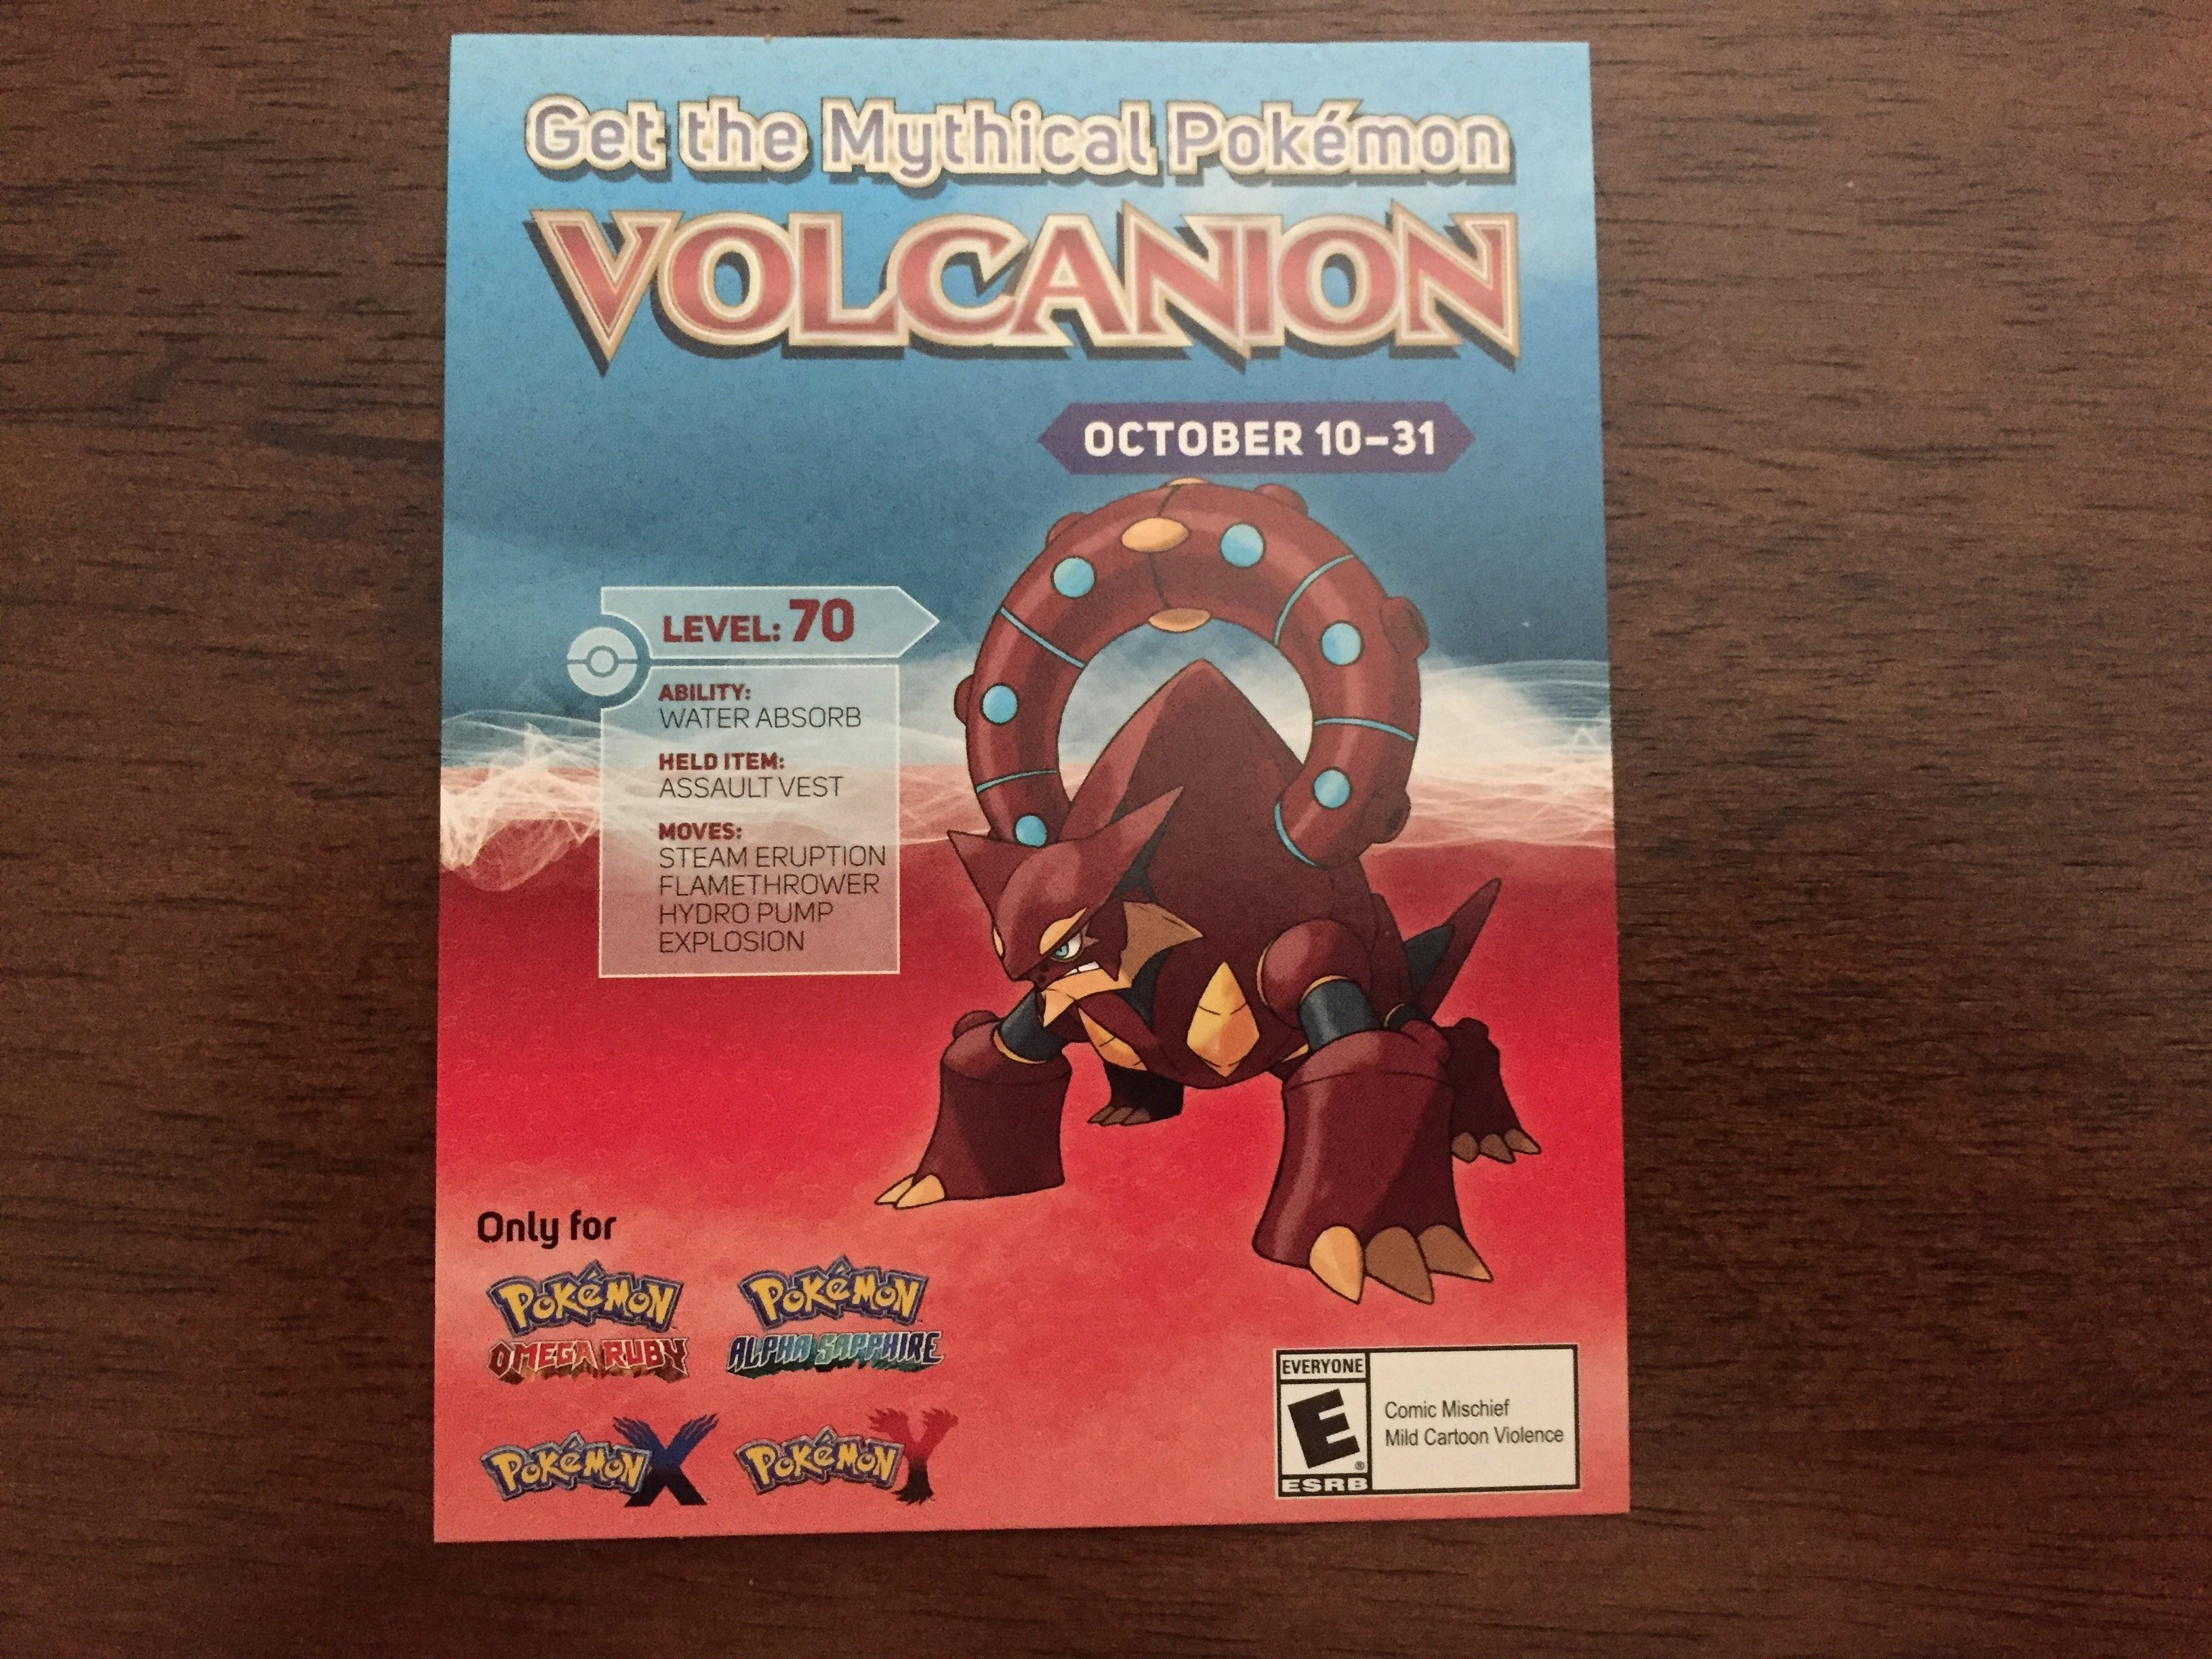 volcanion pokemon cards roll out nationally today in the us at